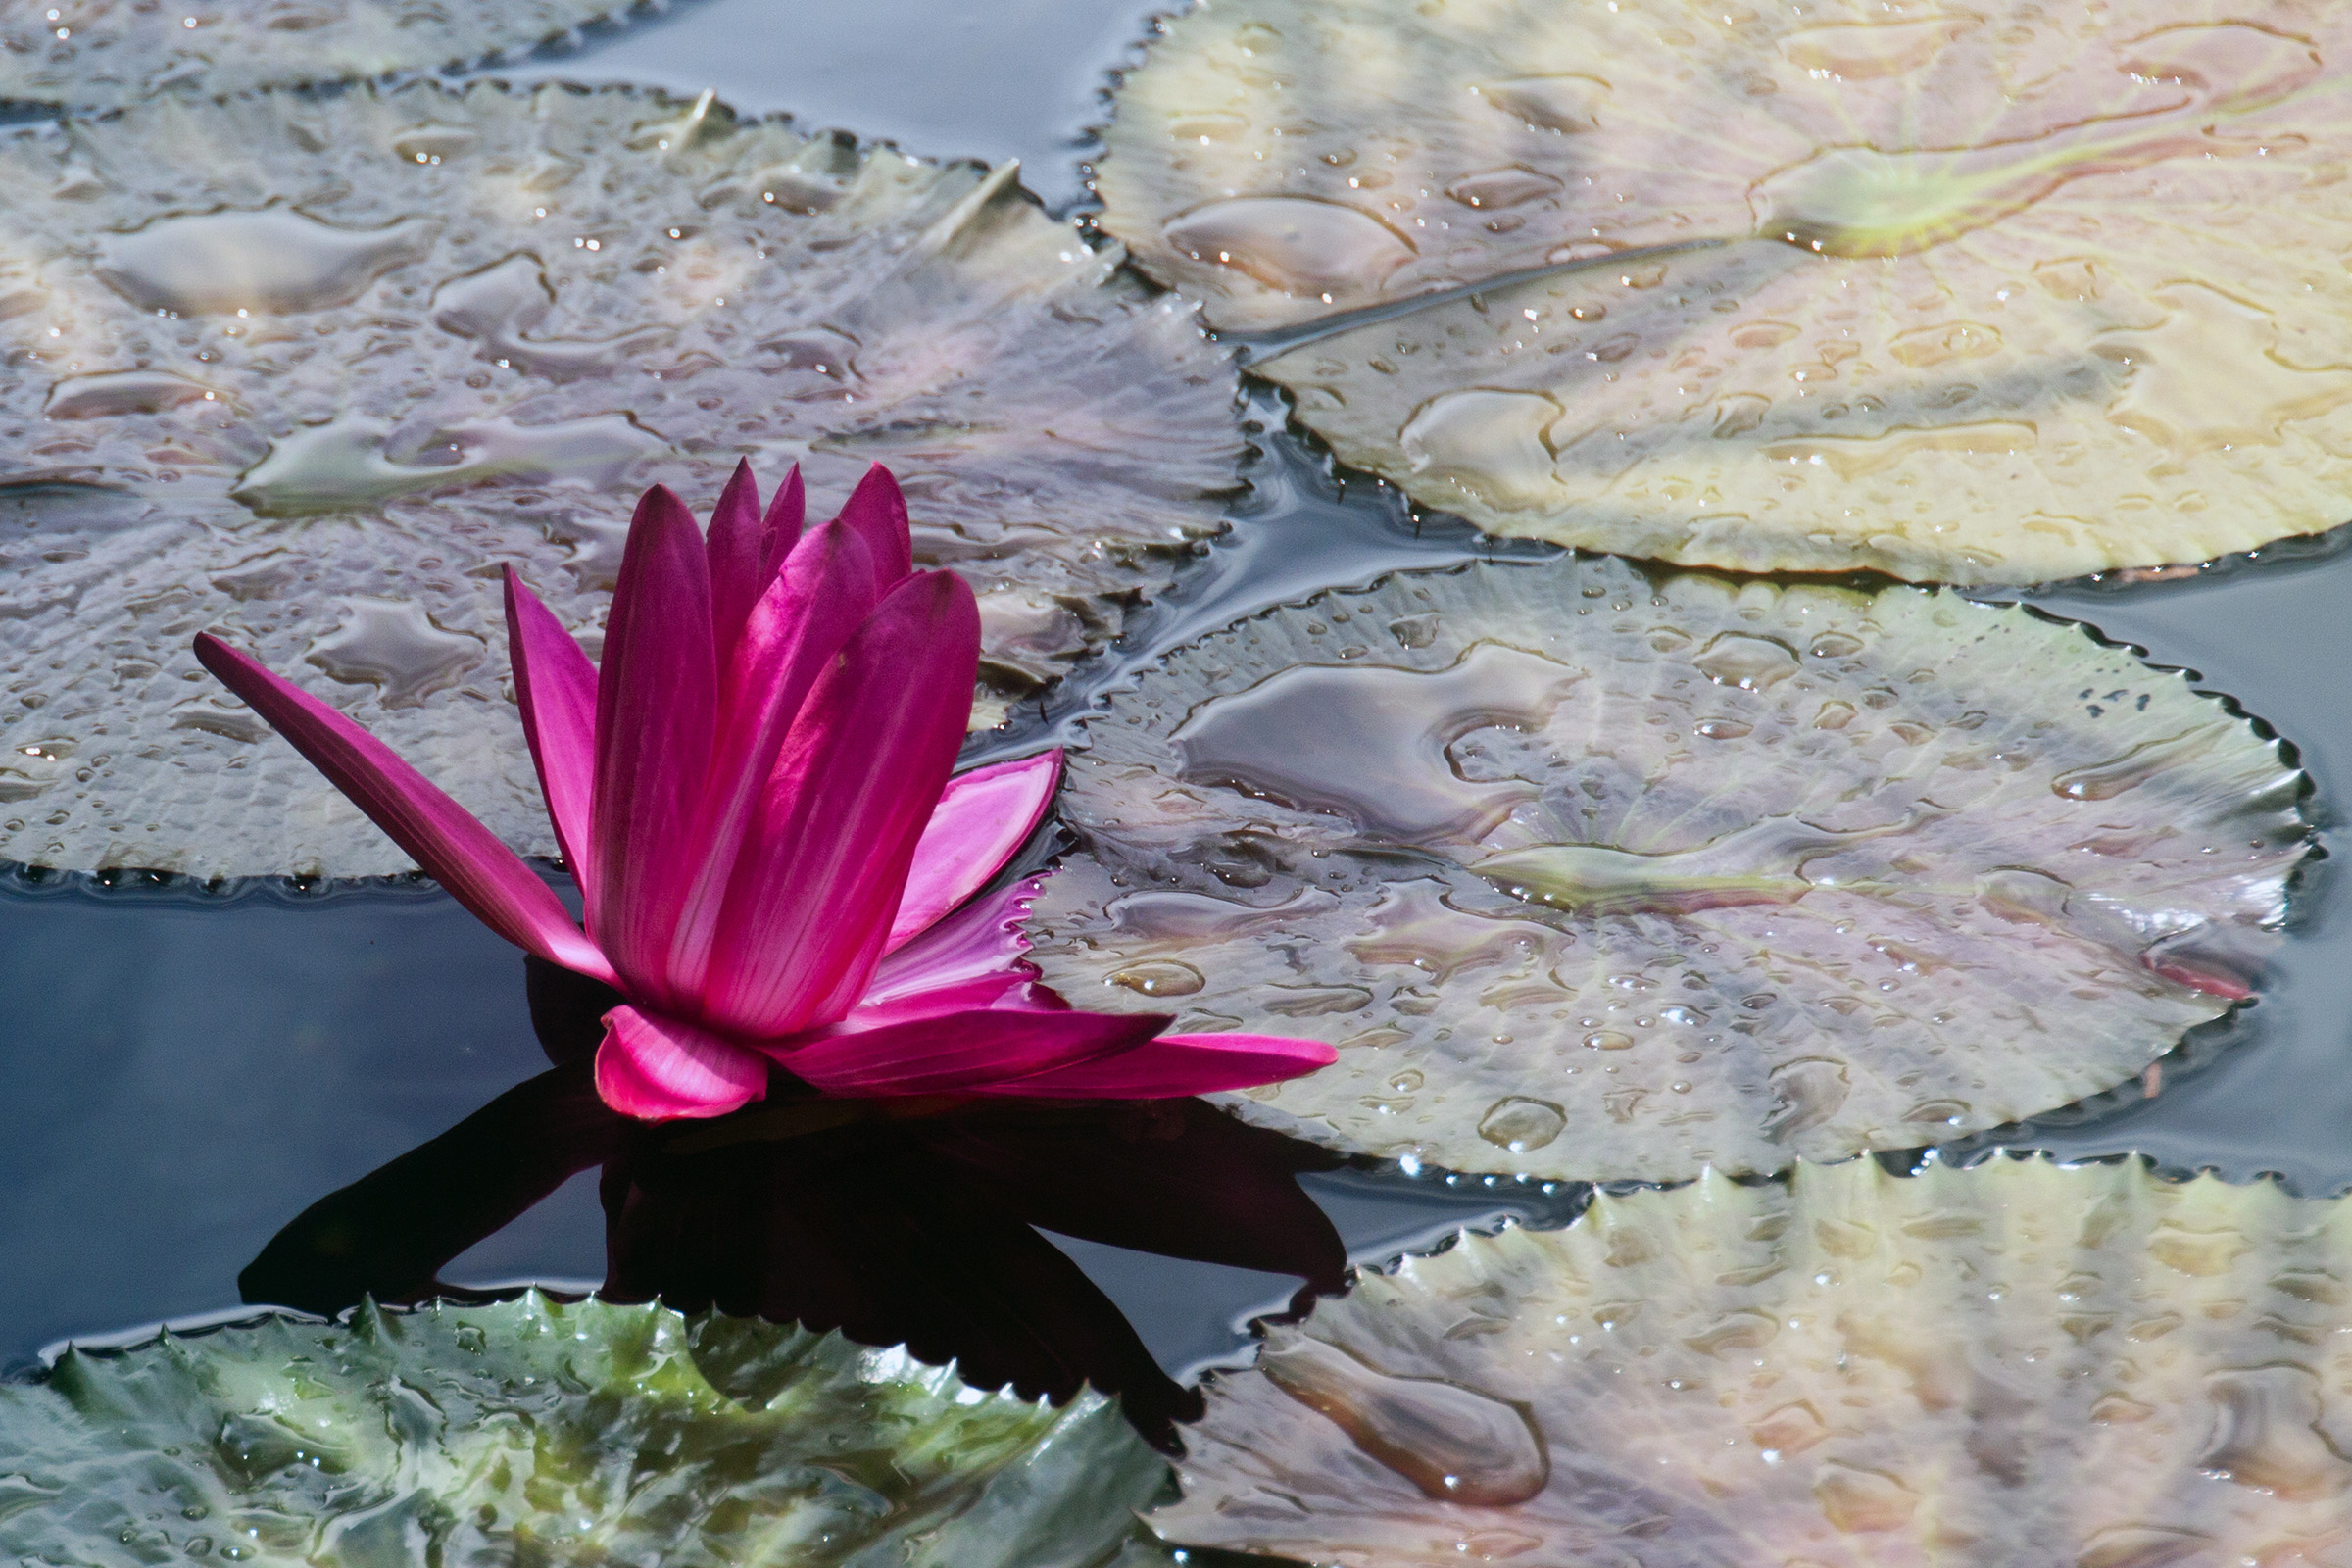 Water lilly, Aquatic, Postcard, Nature, Nymphaea, HQ Photo